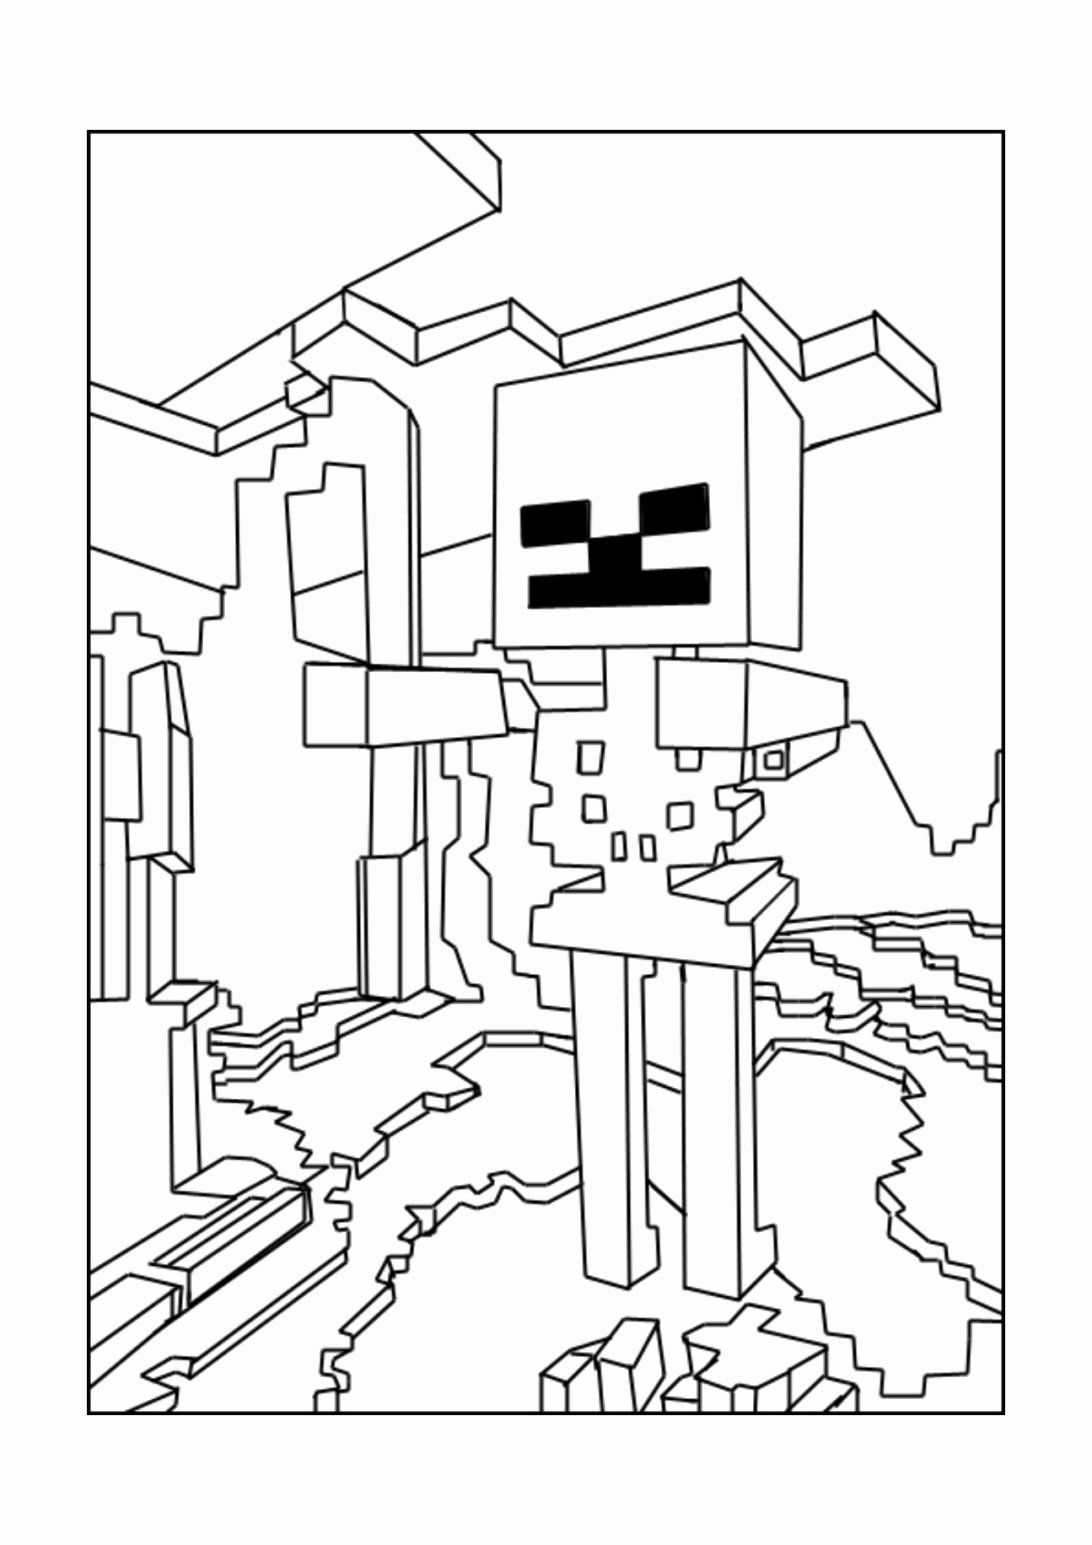 Minecraft Skeleton Coloring Page Lovely Coloring Pages Minecraft Skeleton Colorin Minecraft Coloring Pages Coloring Pages For Kids Coloring Pages Inspirational